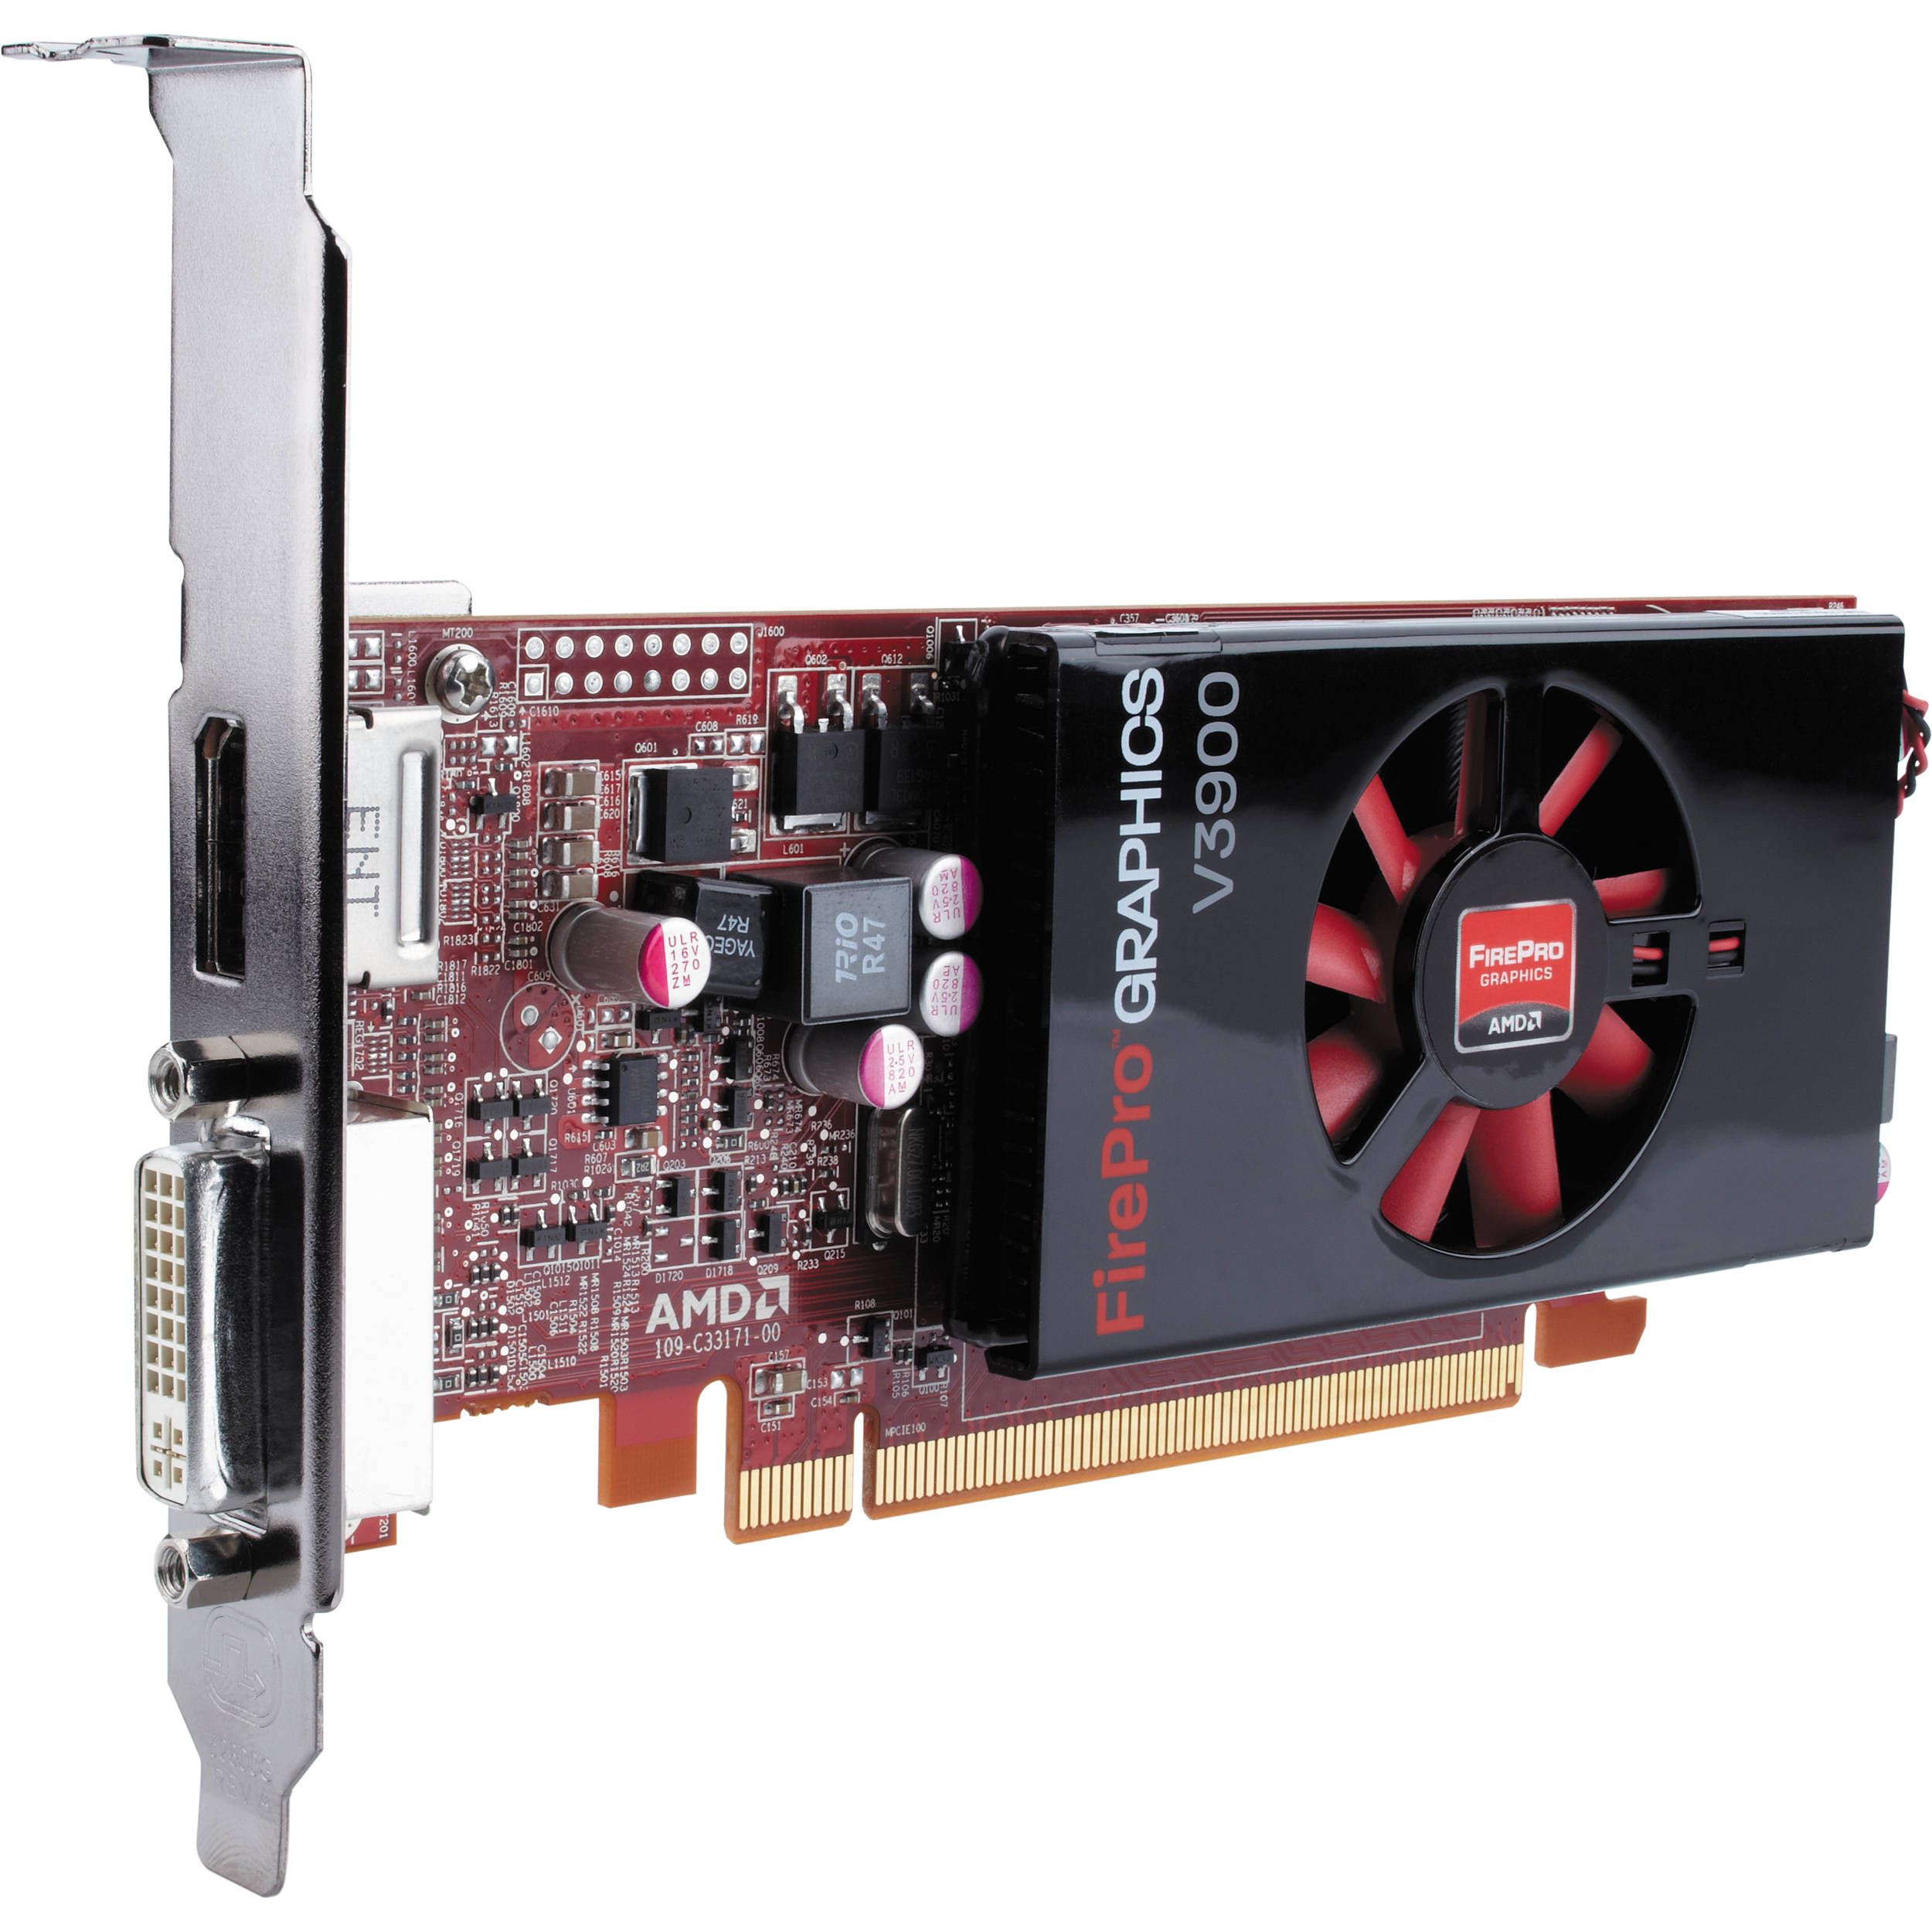 HP AMD FirePro V3900 1GB Professional Graphics Card